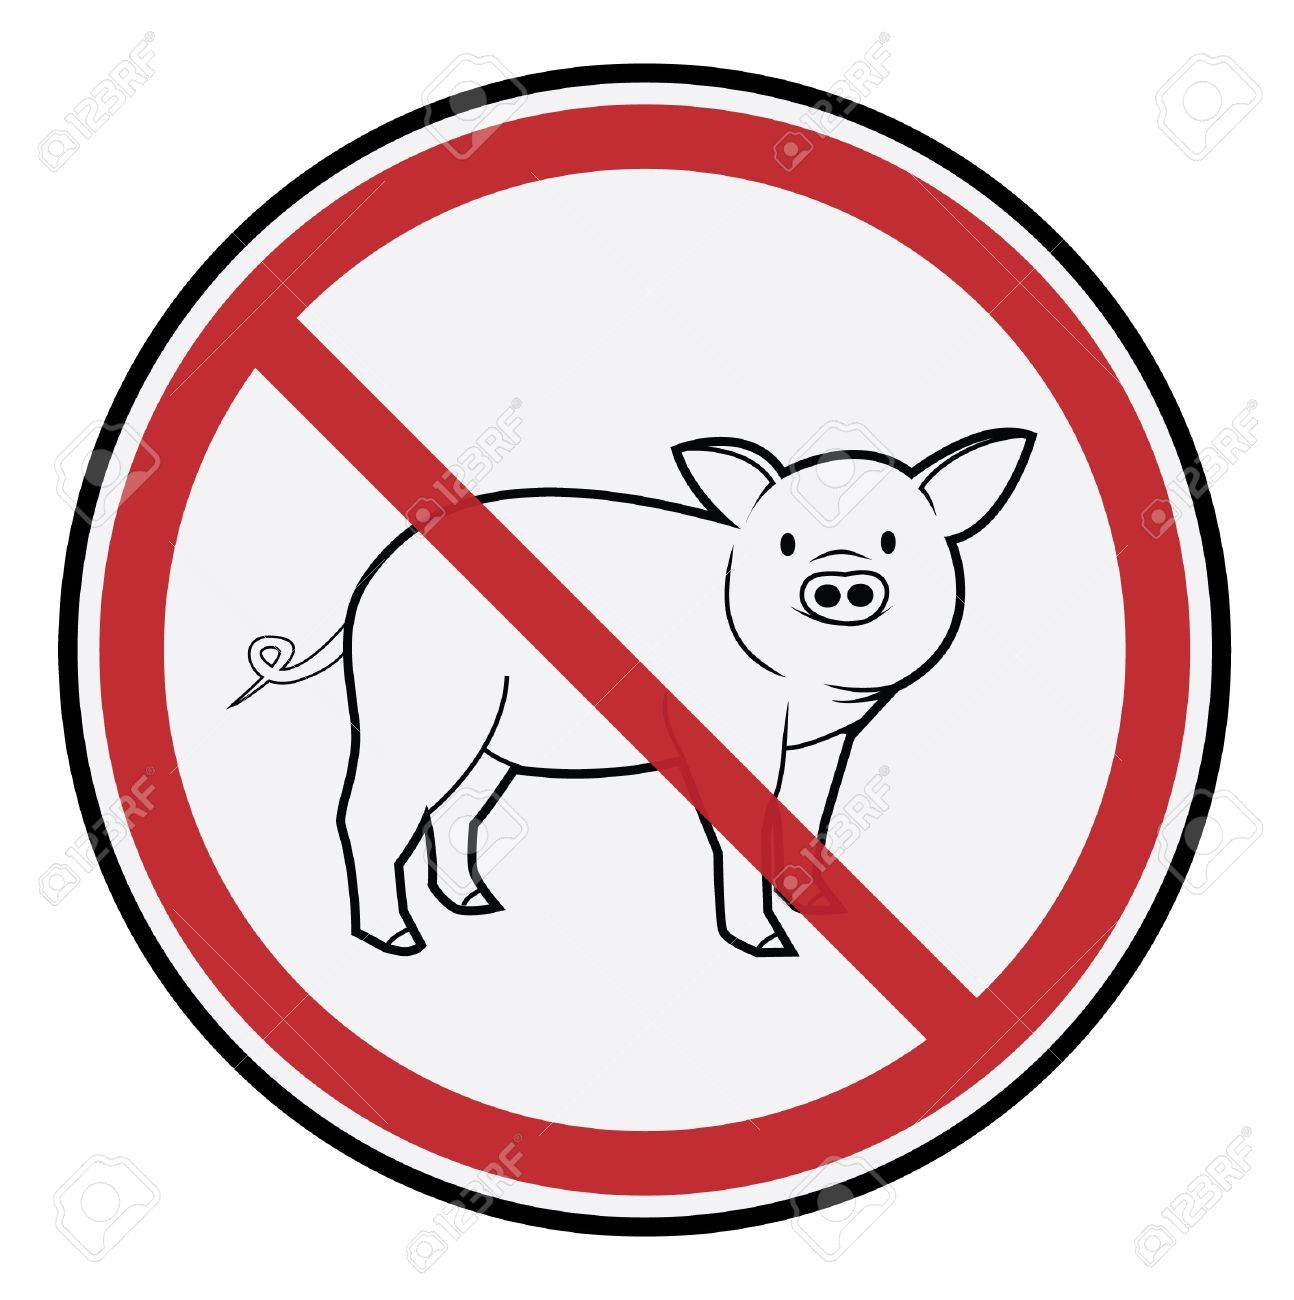 Pig Sign Stock Vector - 17444765